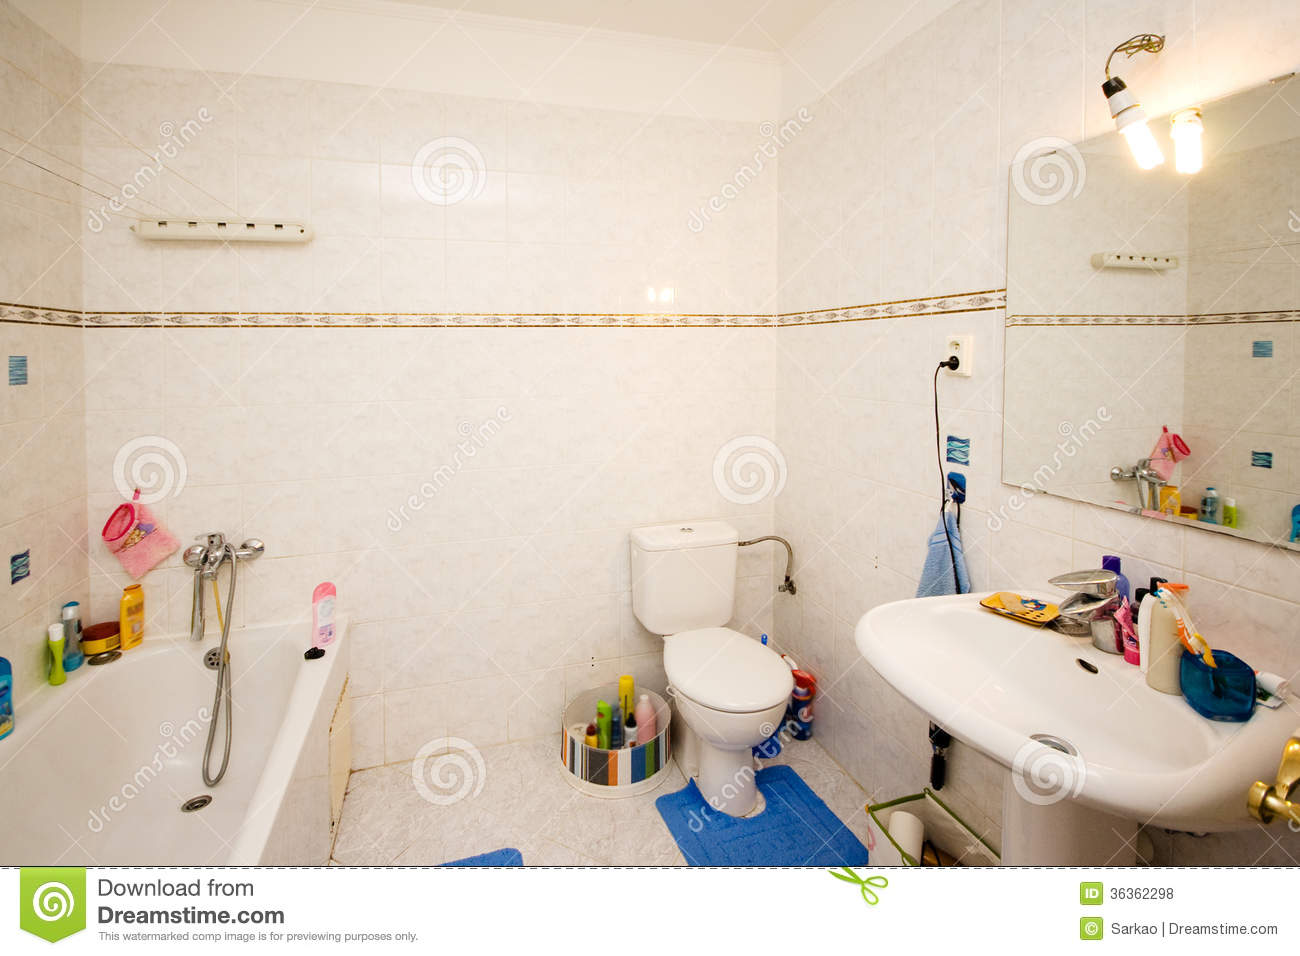 Messy bathroom royalty free stock photos image 36362298 - Picture of bathroom ...